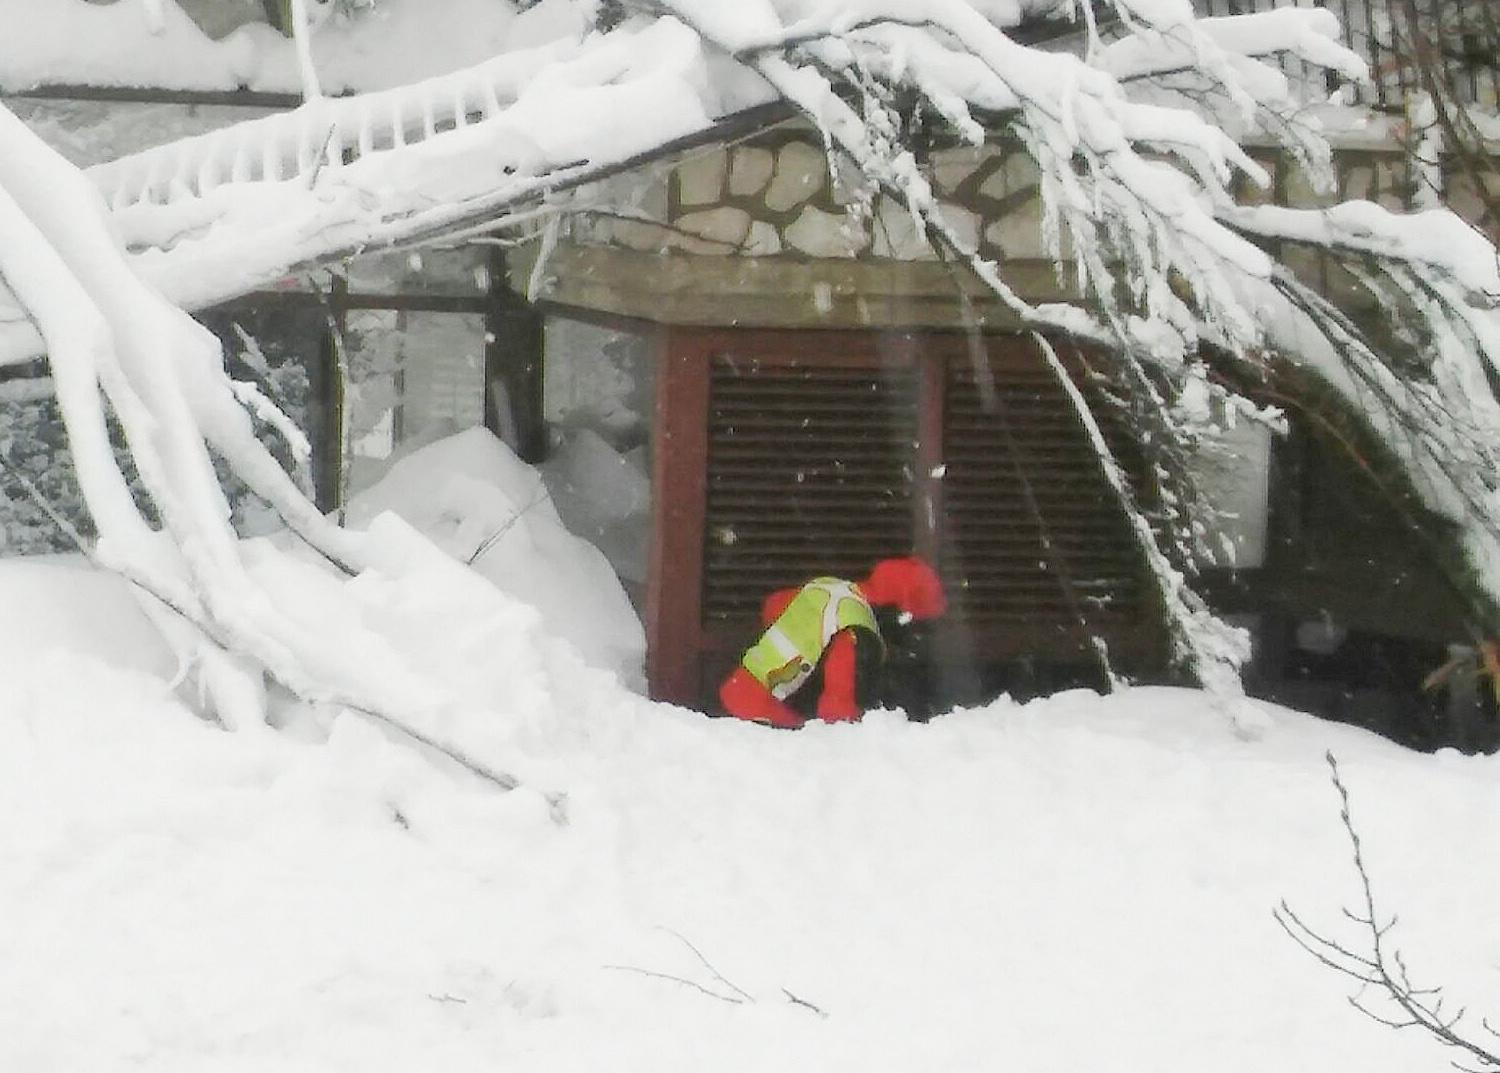 <p>A member of Lazio's Alpine and Speleological Rescue Team is seen on Jan 19, 2017, in front of the Hotel Rigopiano in Farindola, central Italy, hit by an avalanche. (Lazio's Alpine and Speleological Rescue Team. Soccorso Alpino Speleologico Lazio/Handout via REUTERS) </p>